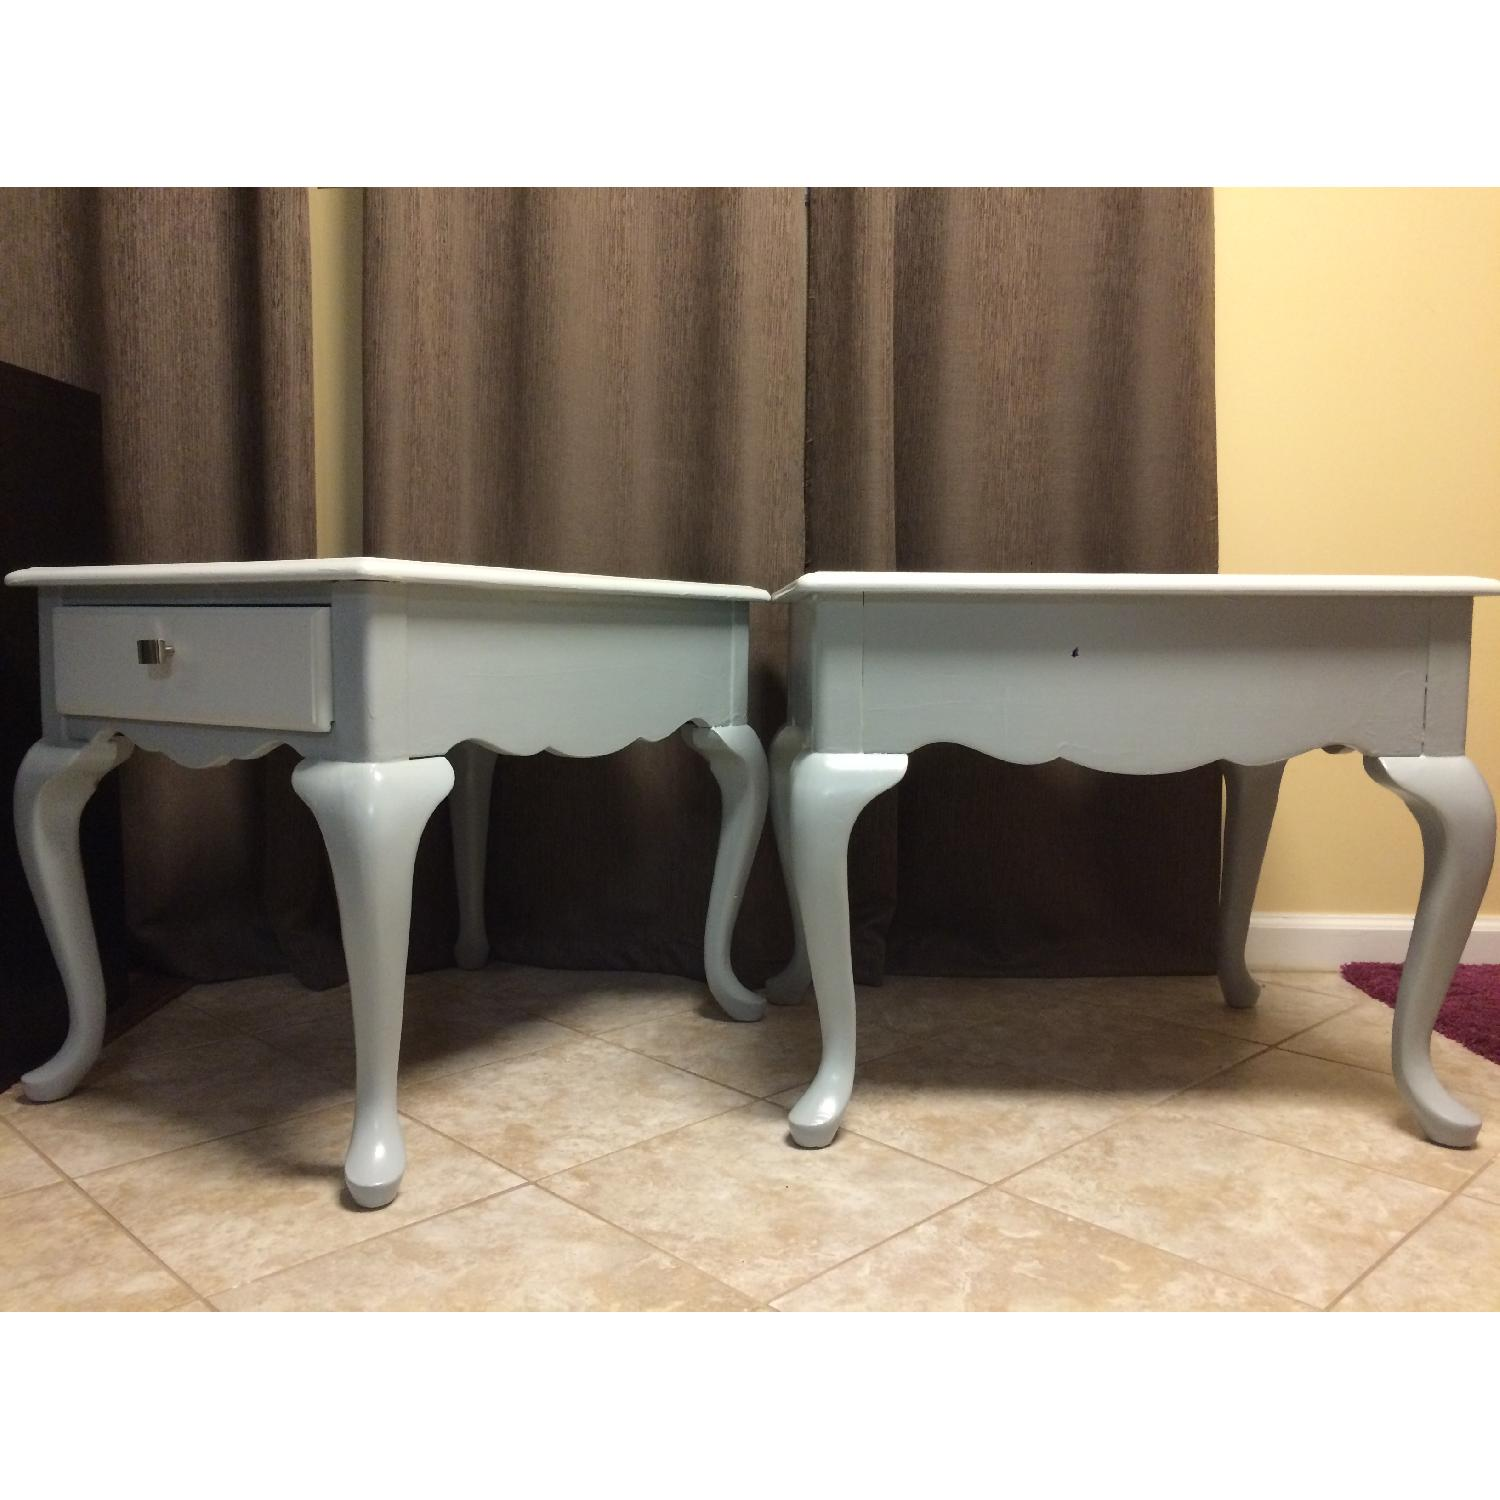 Ethan Allan Queen Anne Styled Side Tables in Gray - Pair - image-3